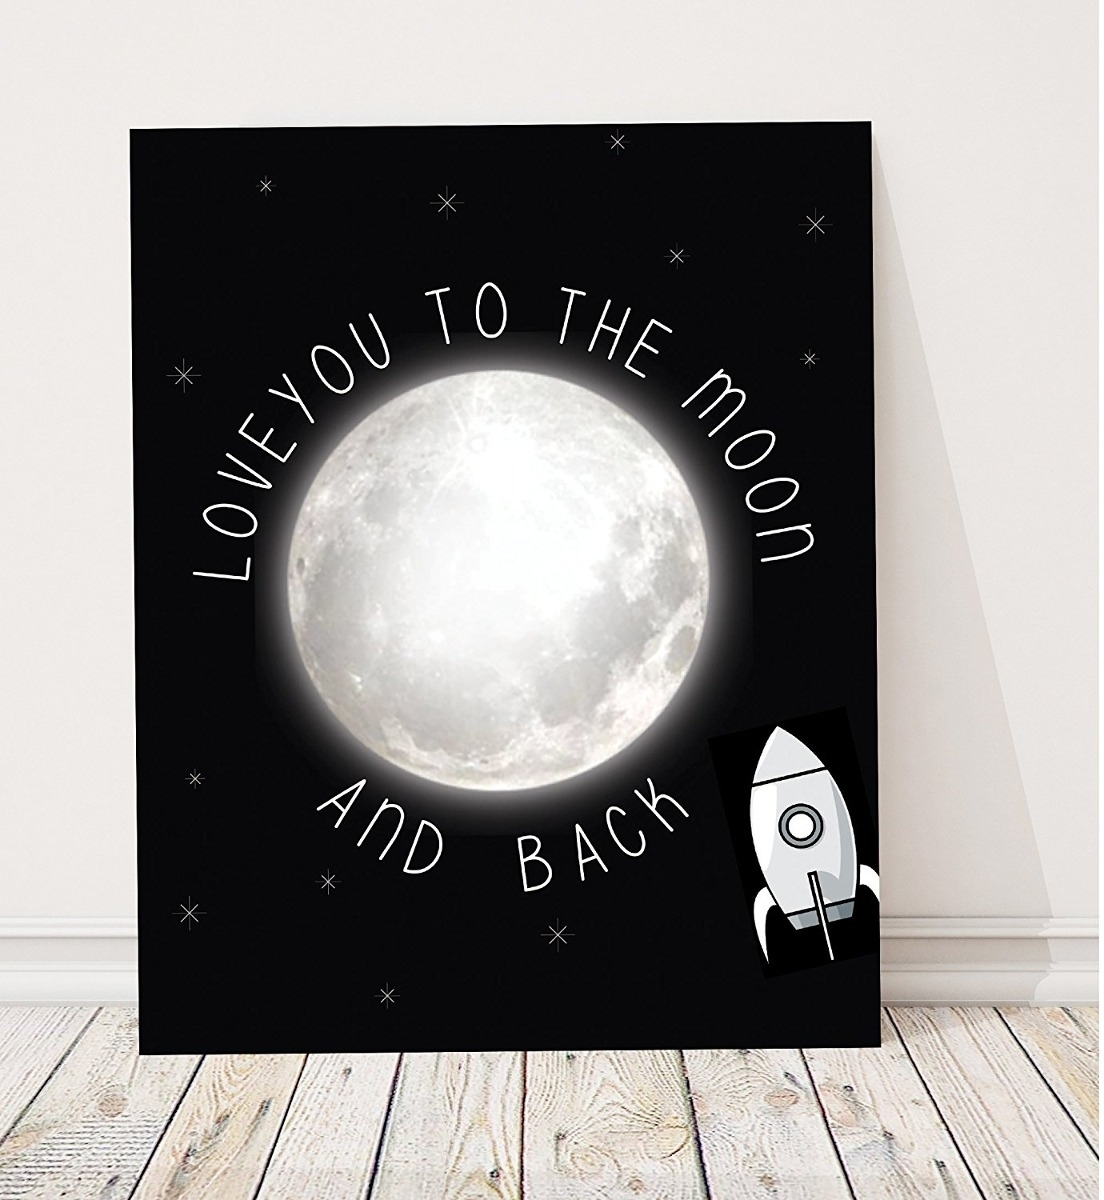 Love You To The Moon And Back Children's Wall Art Print 11X1 Within Current I Love You To The Moon And Back Wall Art (Gallery 12 of 20)